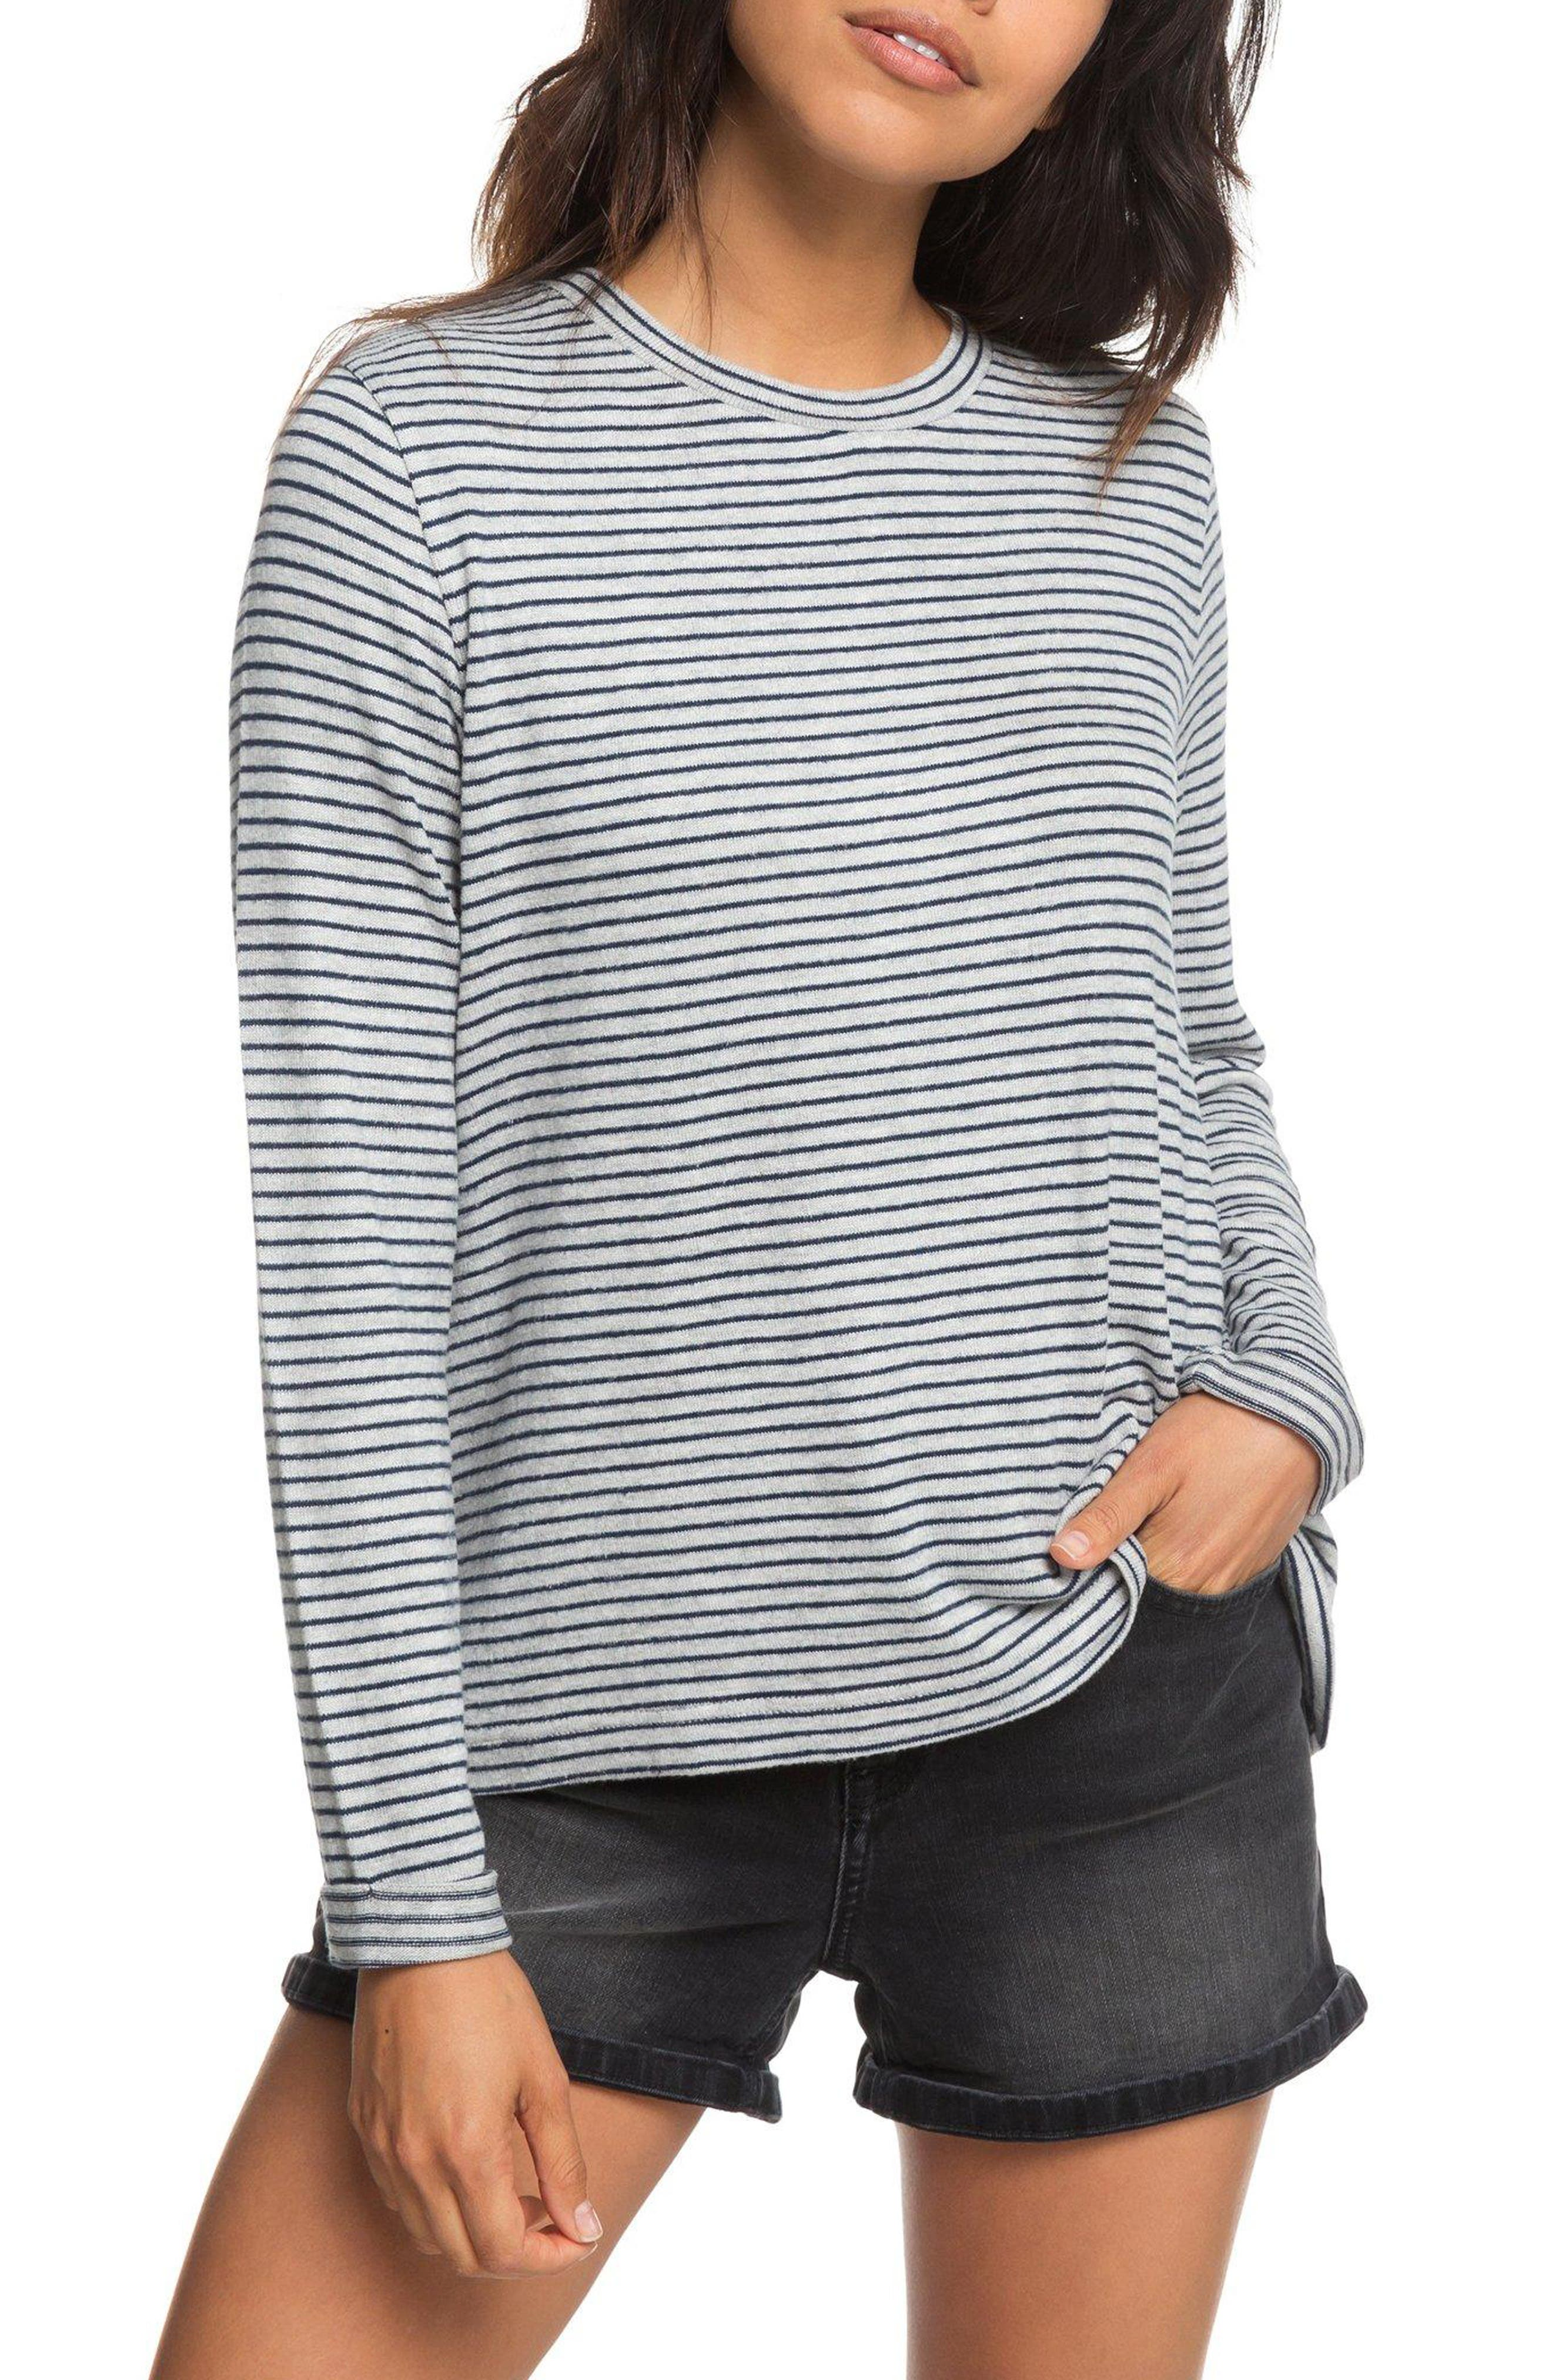 Chasing You Stripe Knit Top,                             Main thumbnail 1, color,                             HERITAGE HEATHER THIN STRIPES